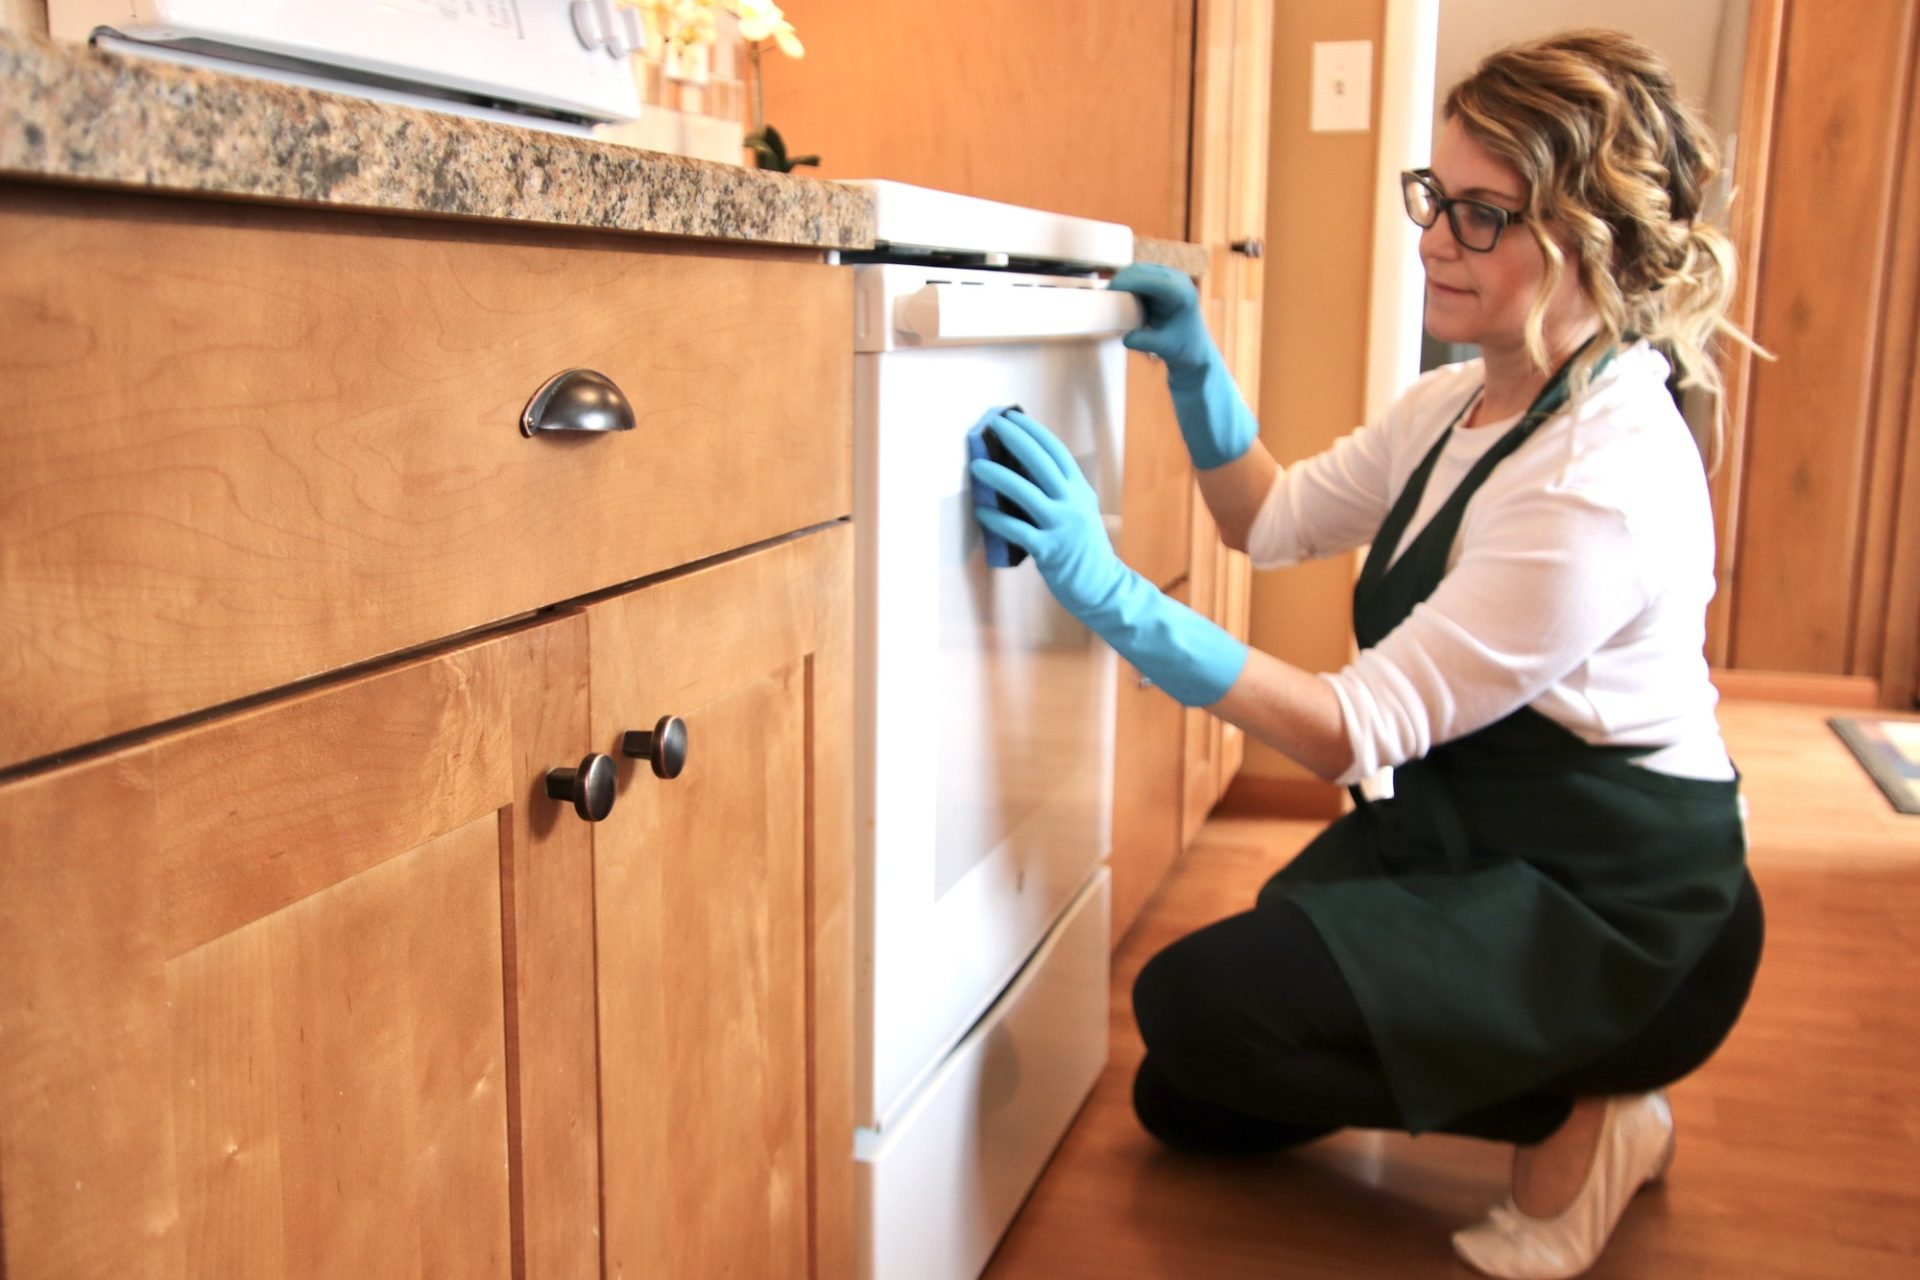 Woman cleaning outside of oven